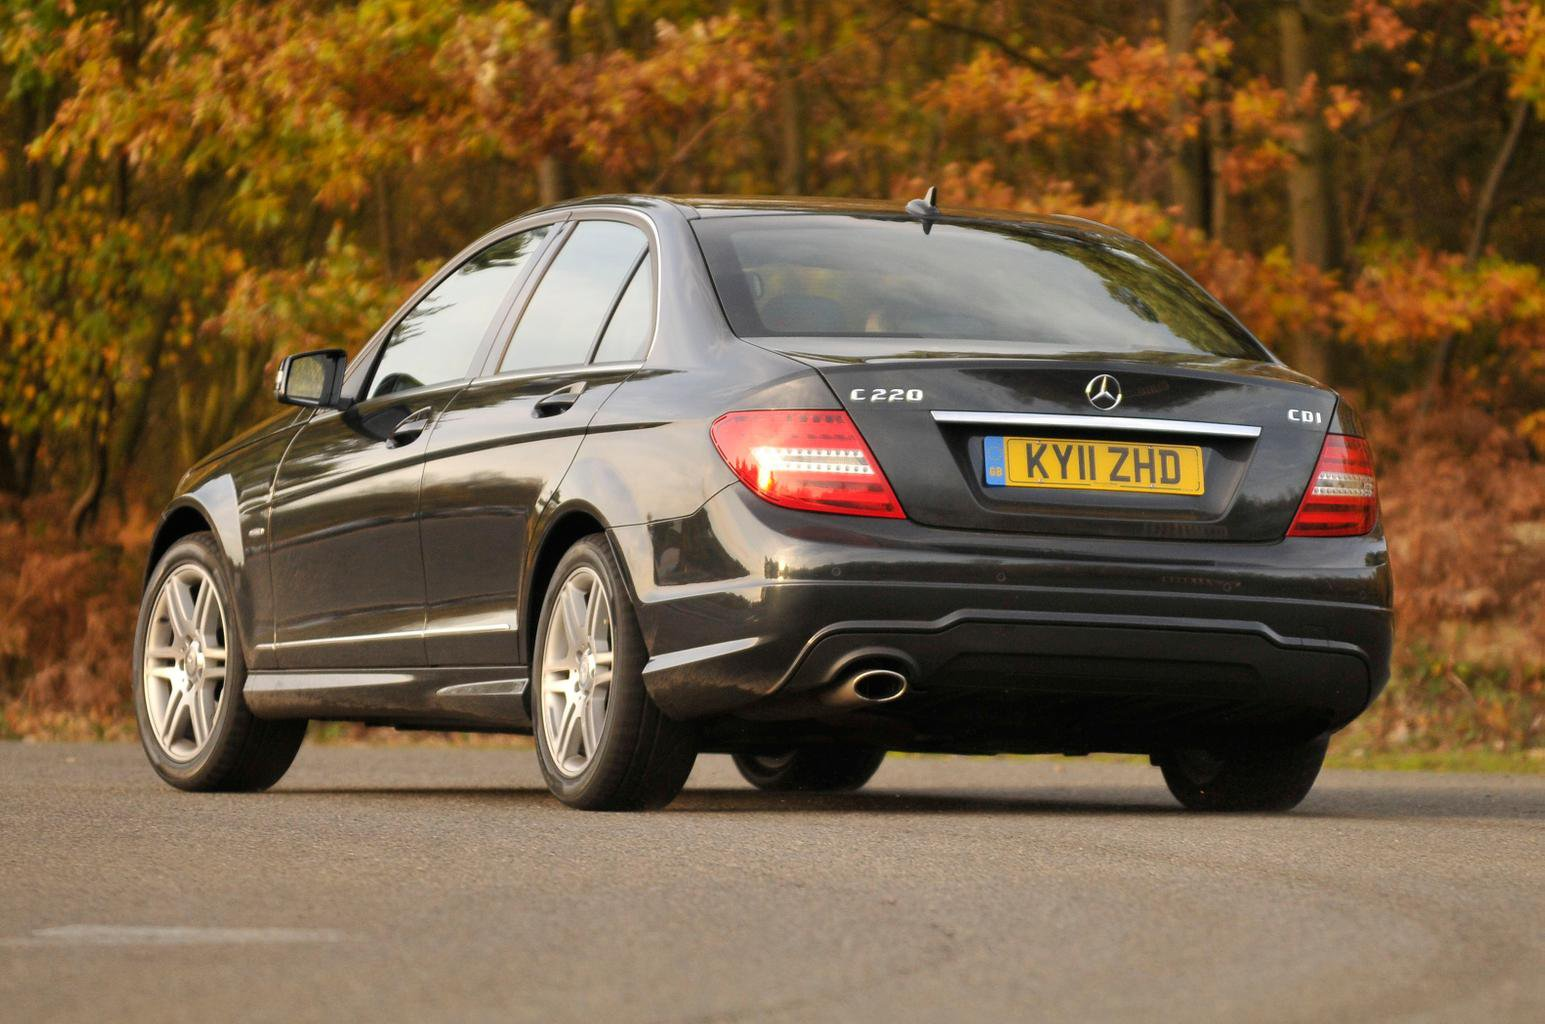 Used Bmw 3 Series Vs Mercedes C Class What Car